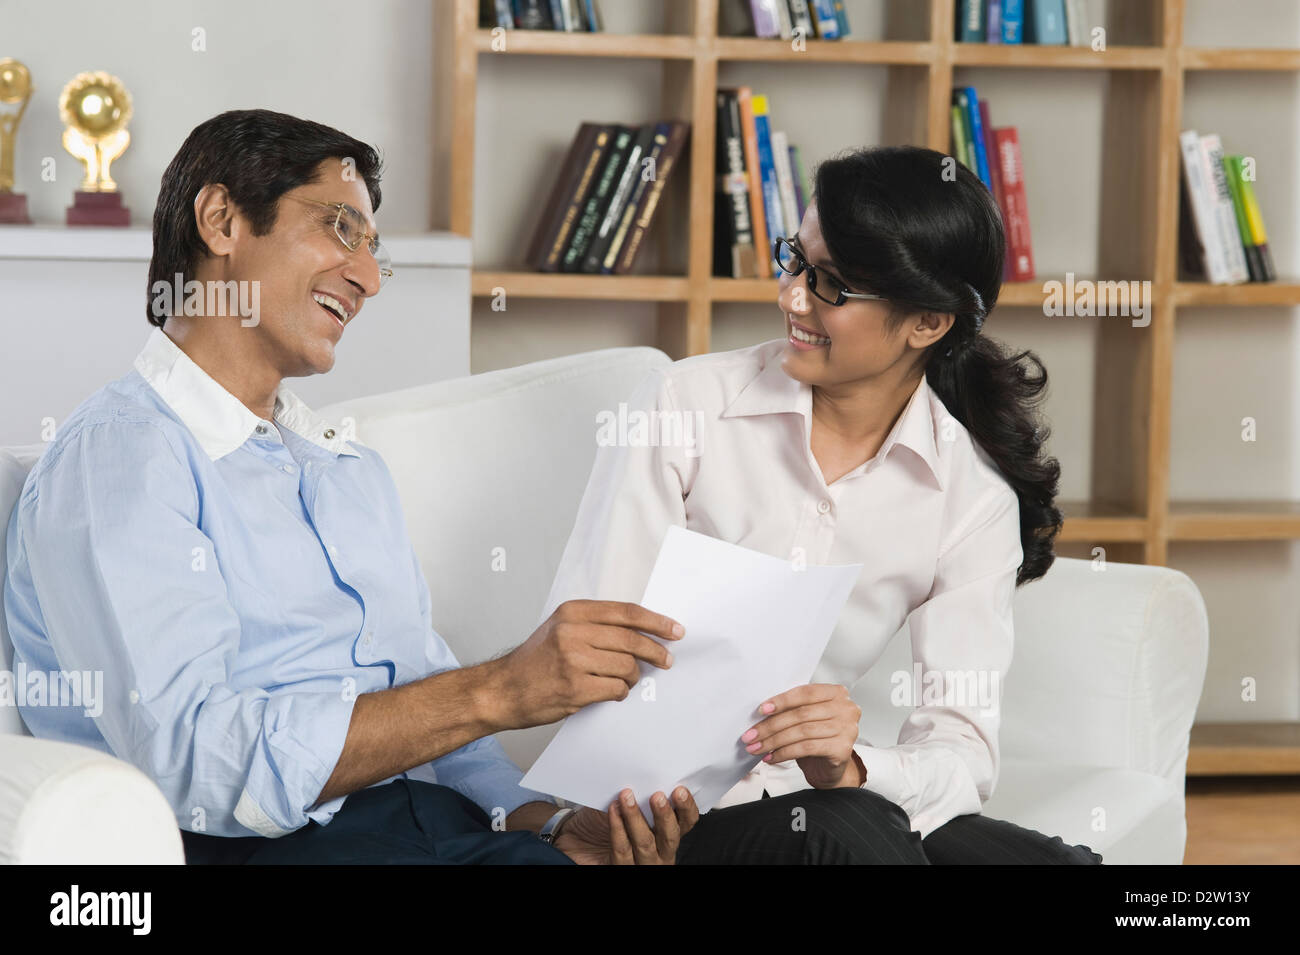 Man looking the report card of his daughter and smiling - Stock Image